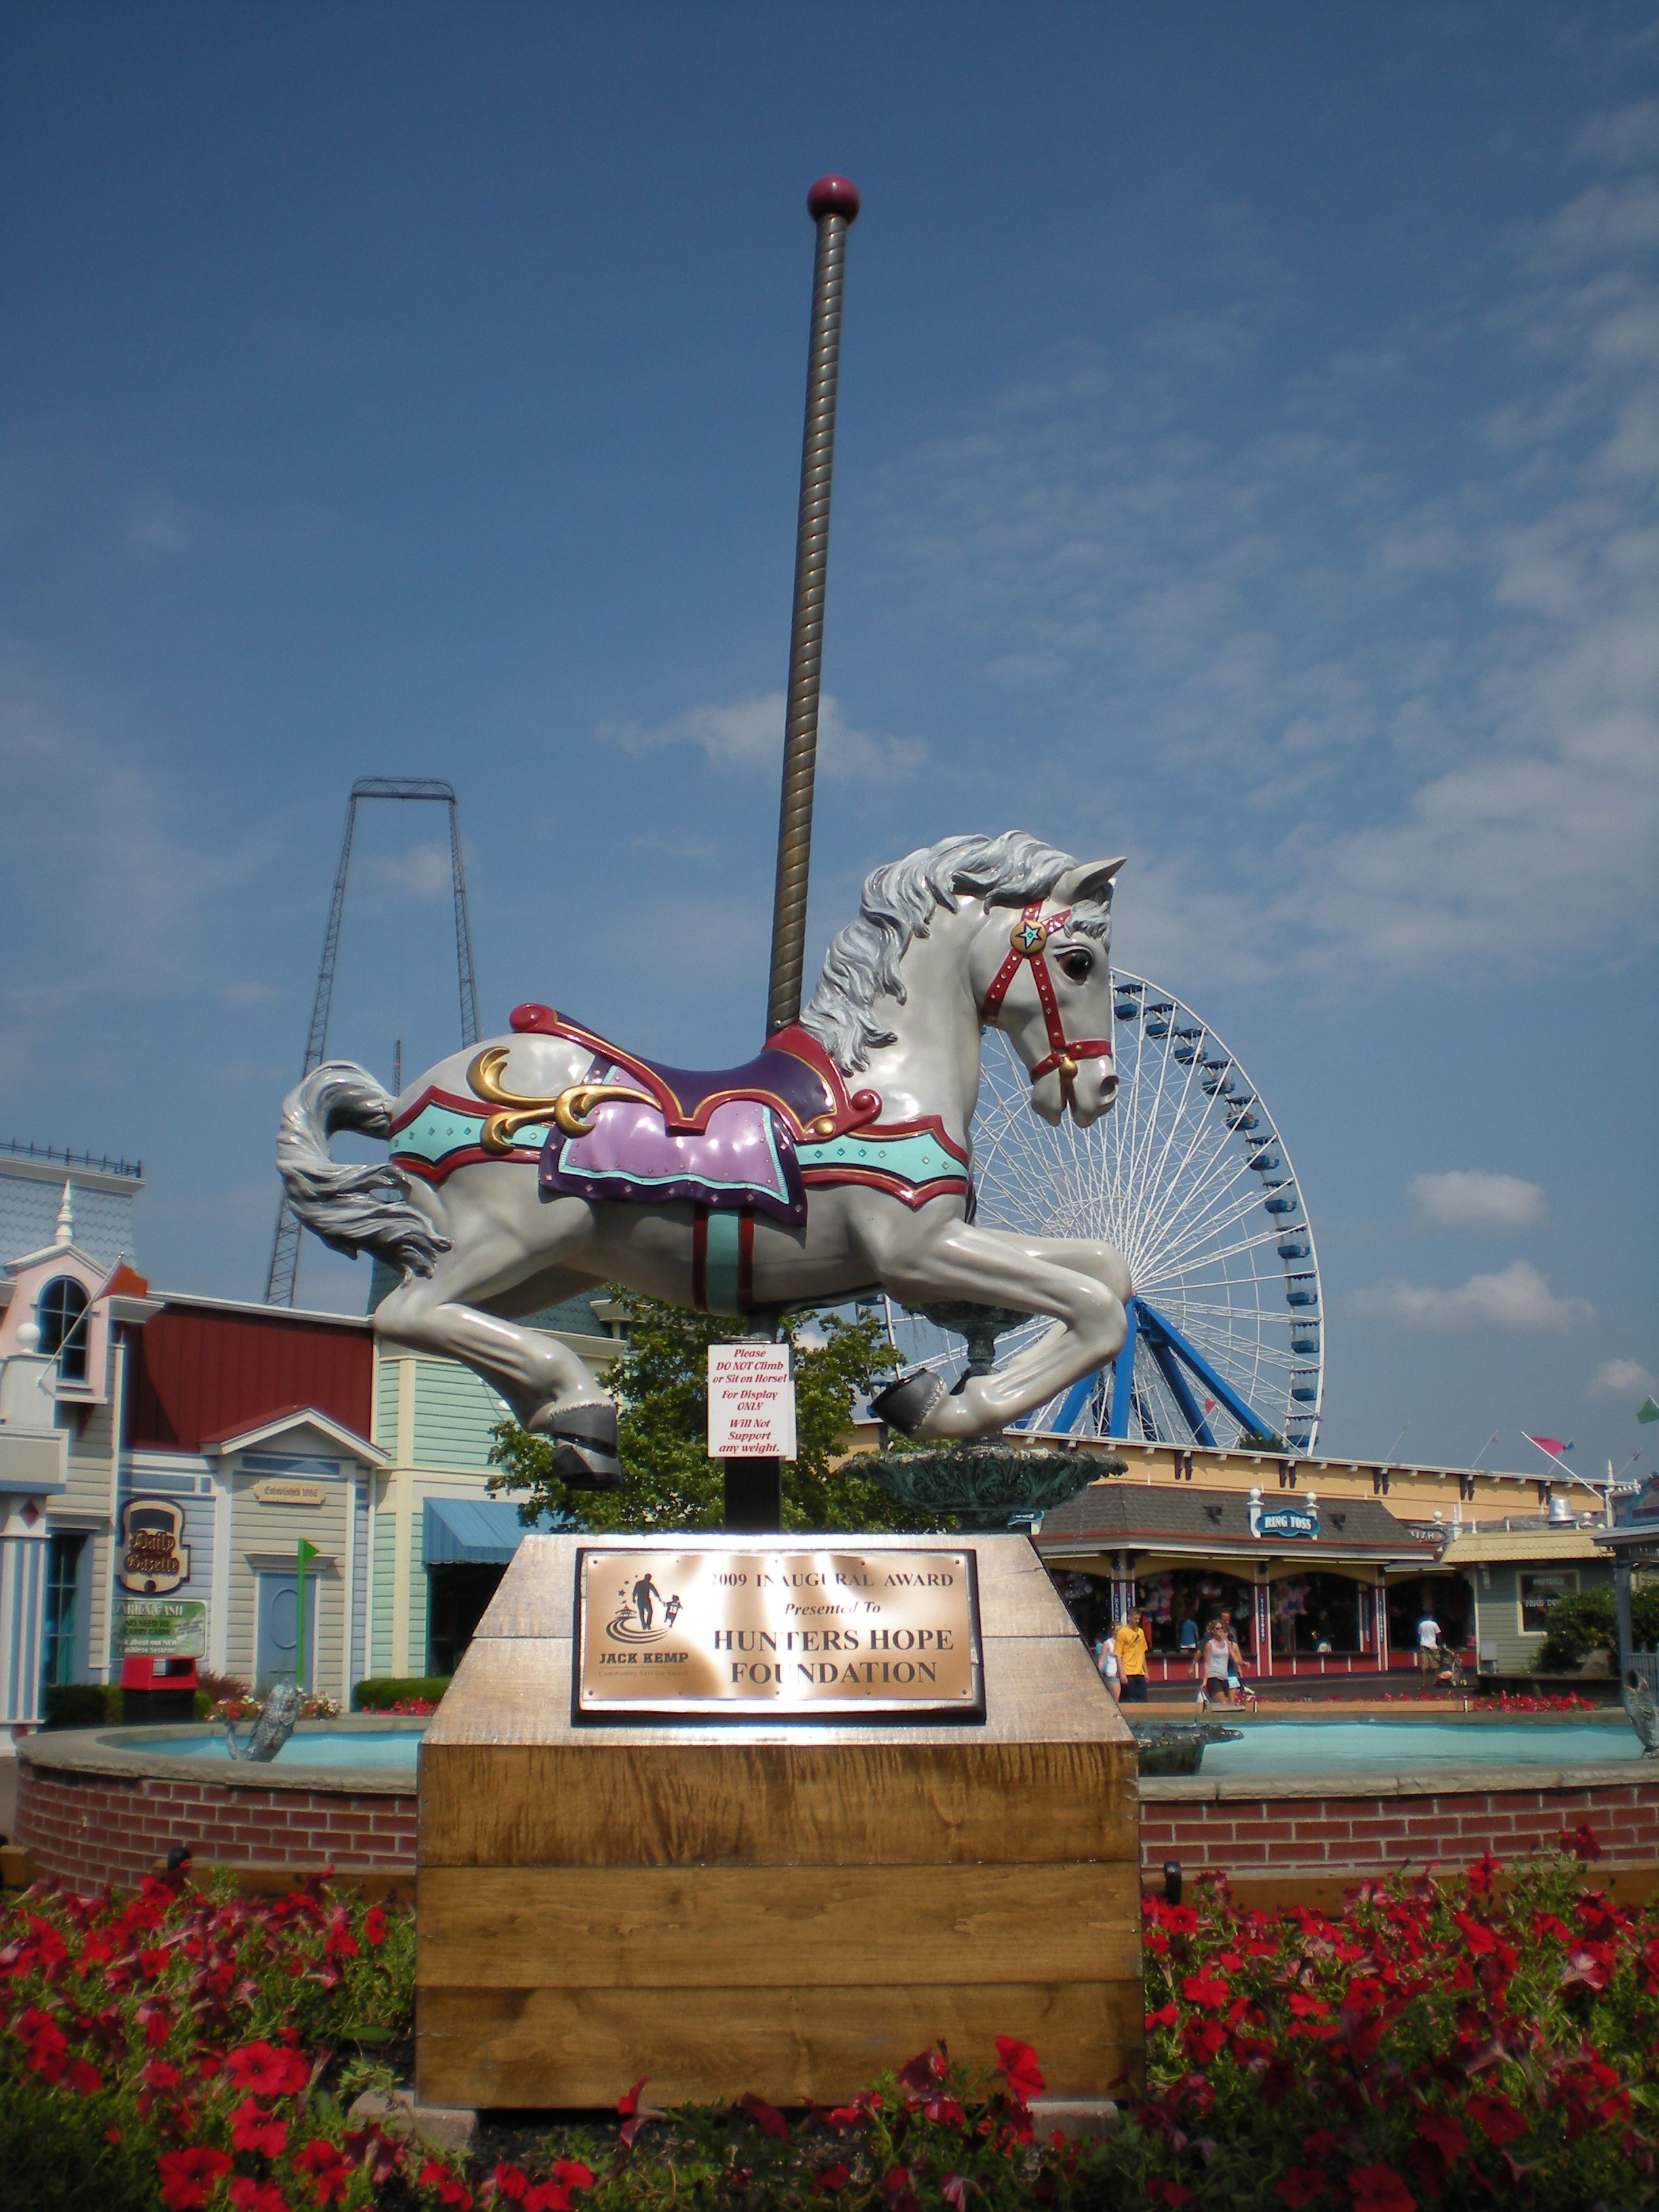 Darien Lake Ny A Former 6 Flags Themepark It S Most Famous For It S West Coast Choppers Motocross Roller Coaster La Darien Lake Amusement Park Thrill Ride